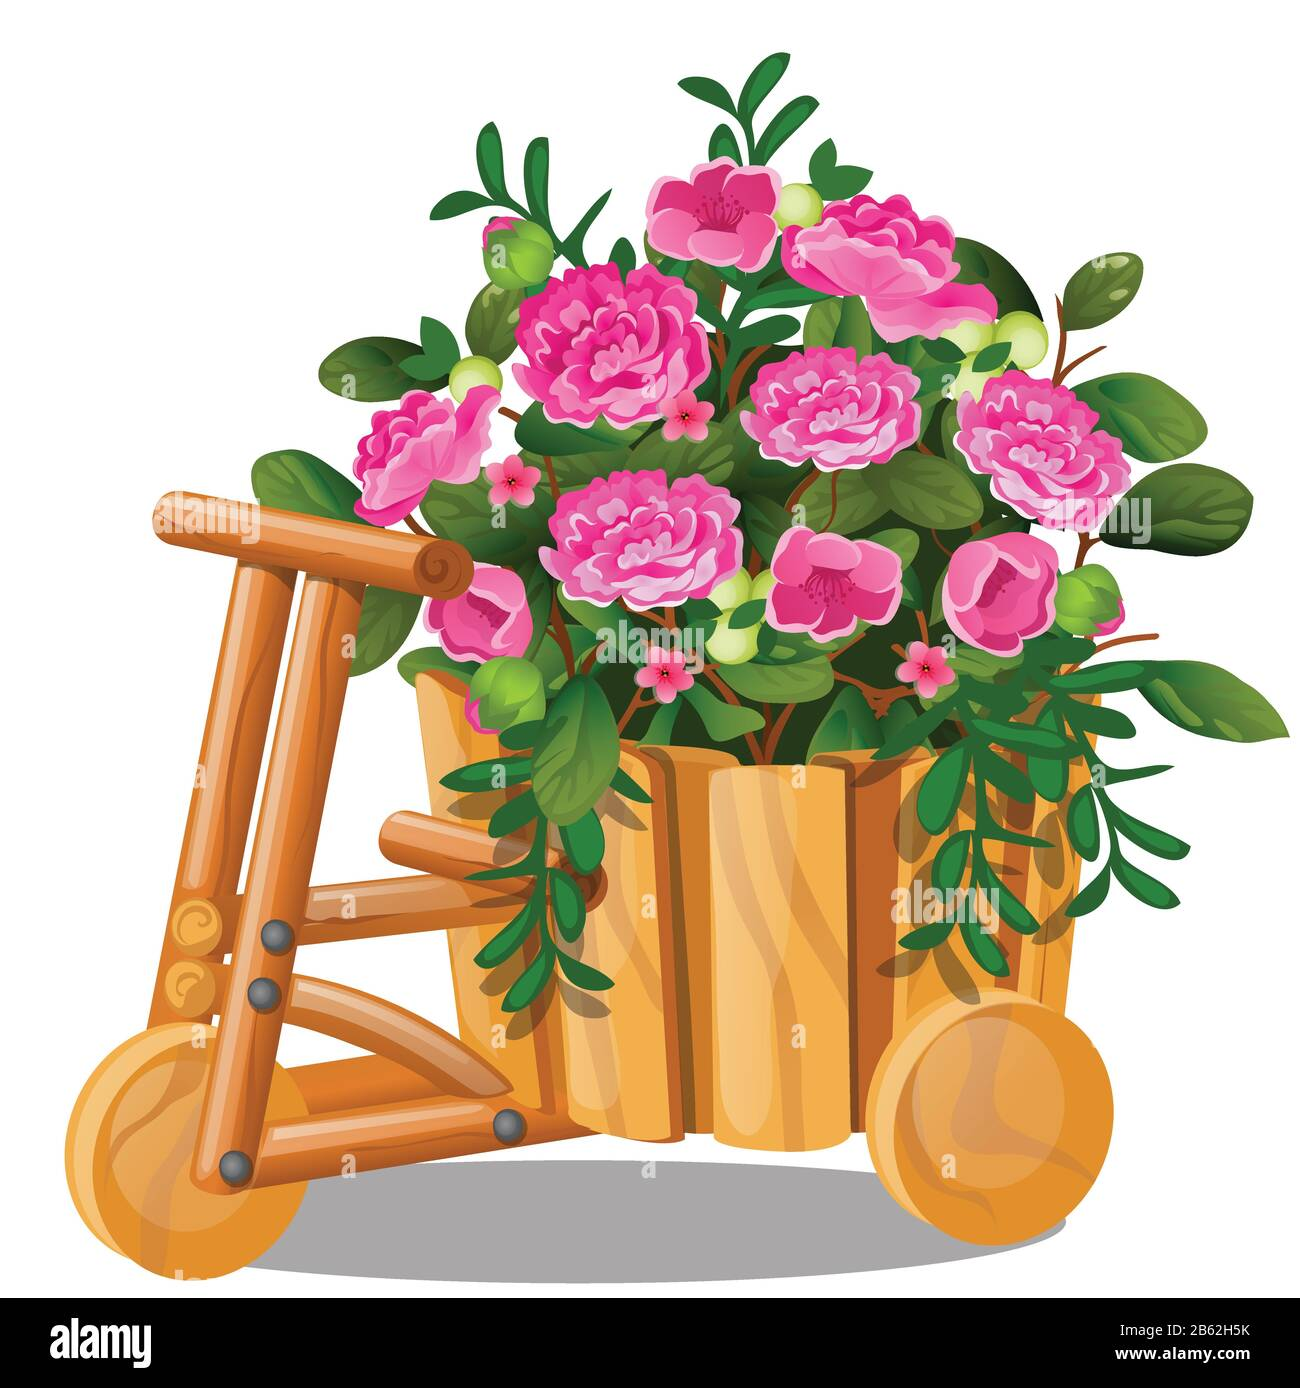 Flower Pot In The Shape Of Wooden Cart With Bucket With Pink Flowers Isolated On White Background Vector Cartoon Close Up Illustration Stock Vector Image Art Alamy